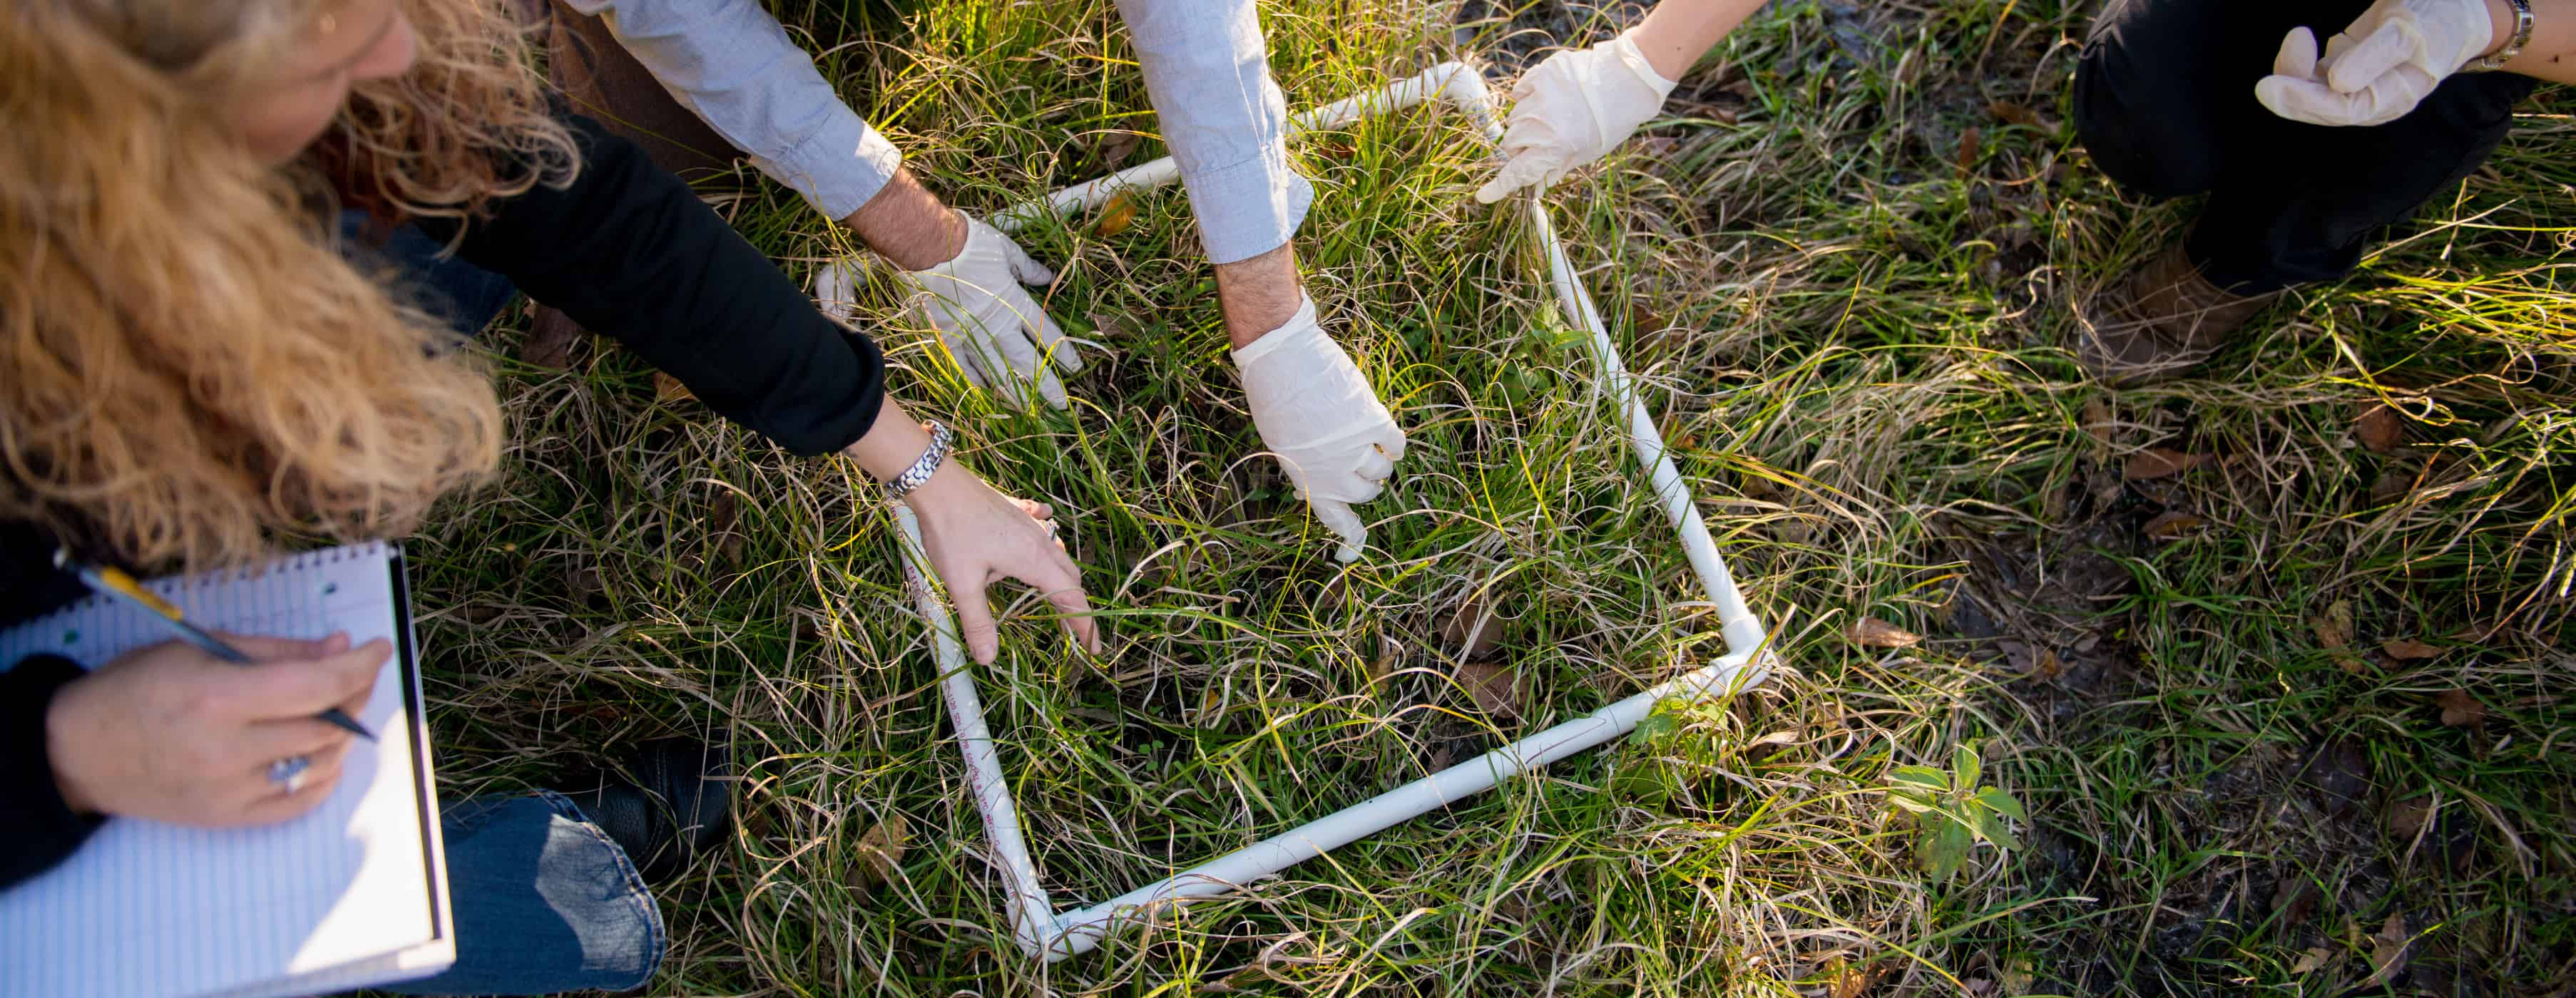 Students taking sample of grass